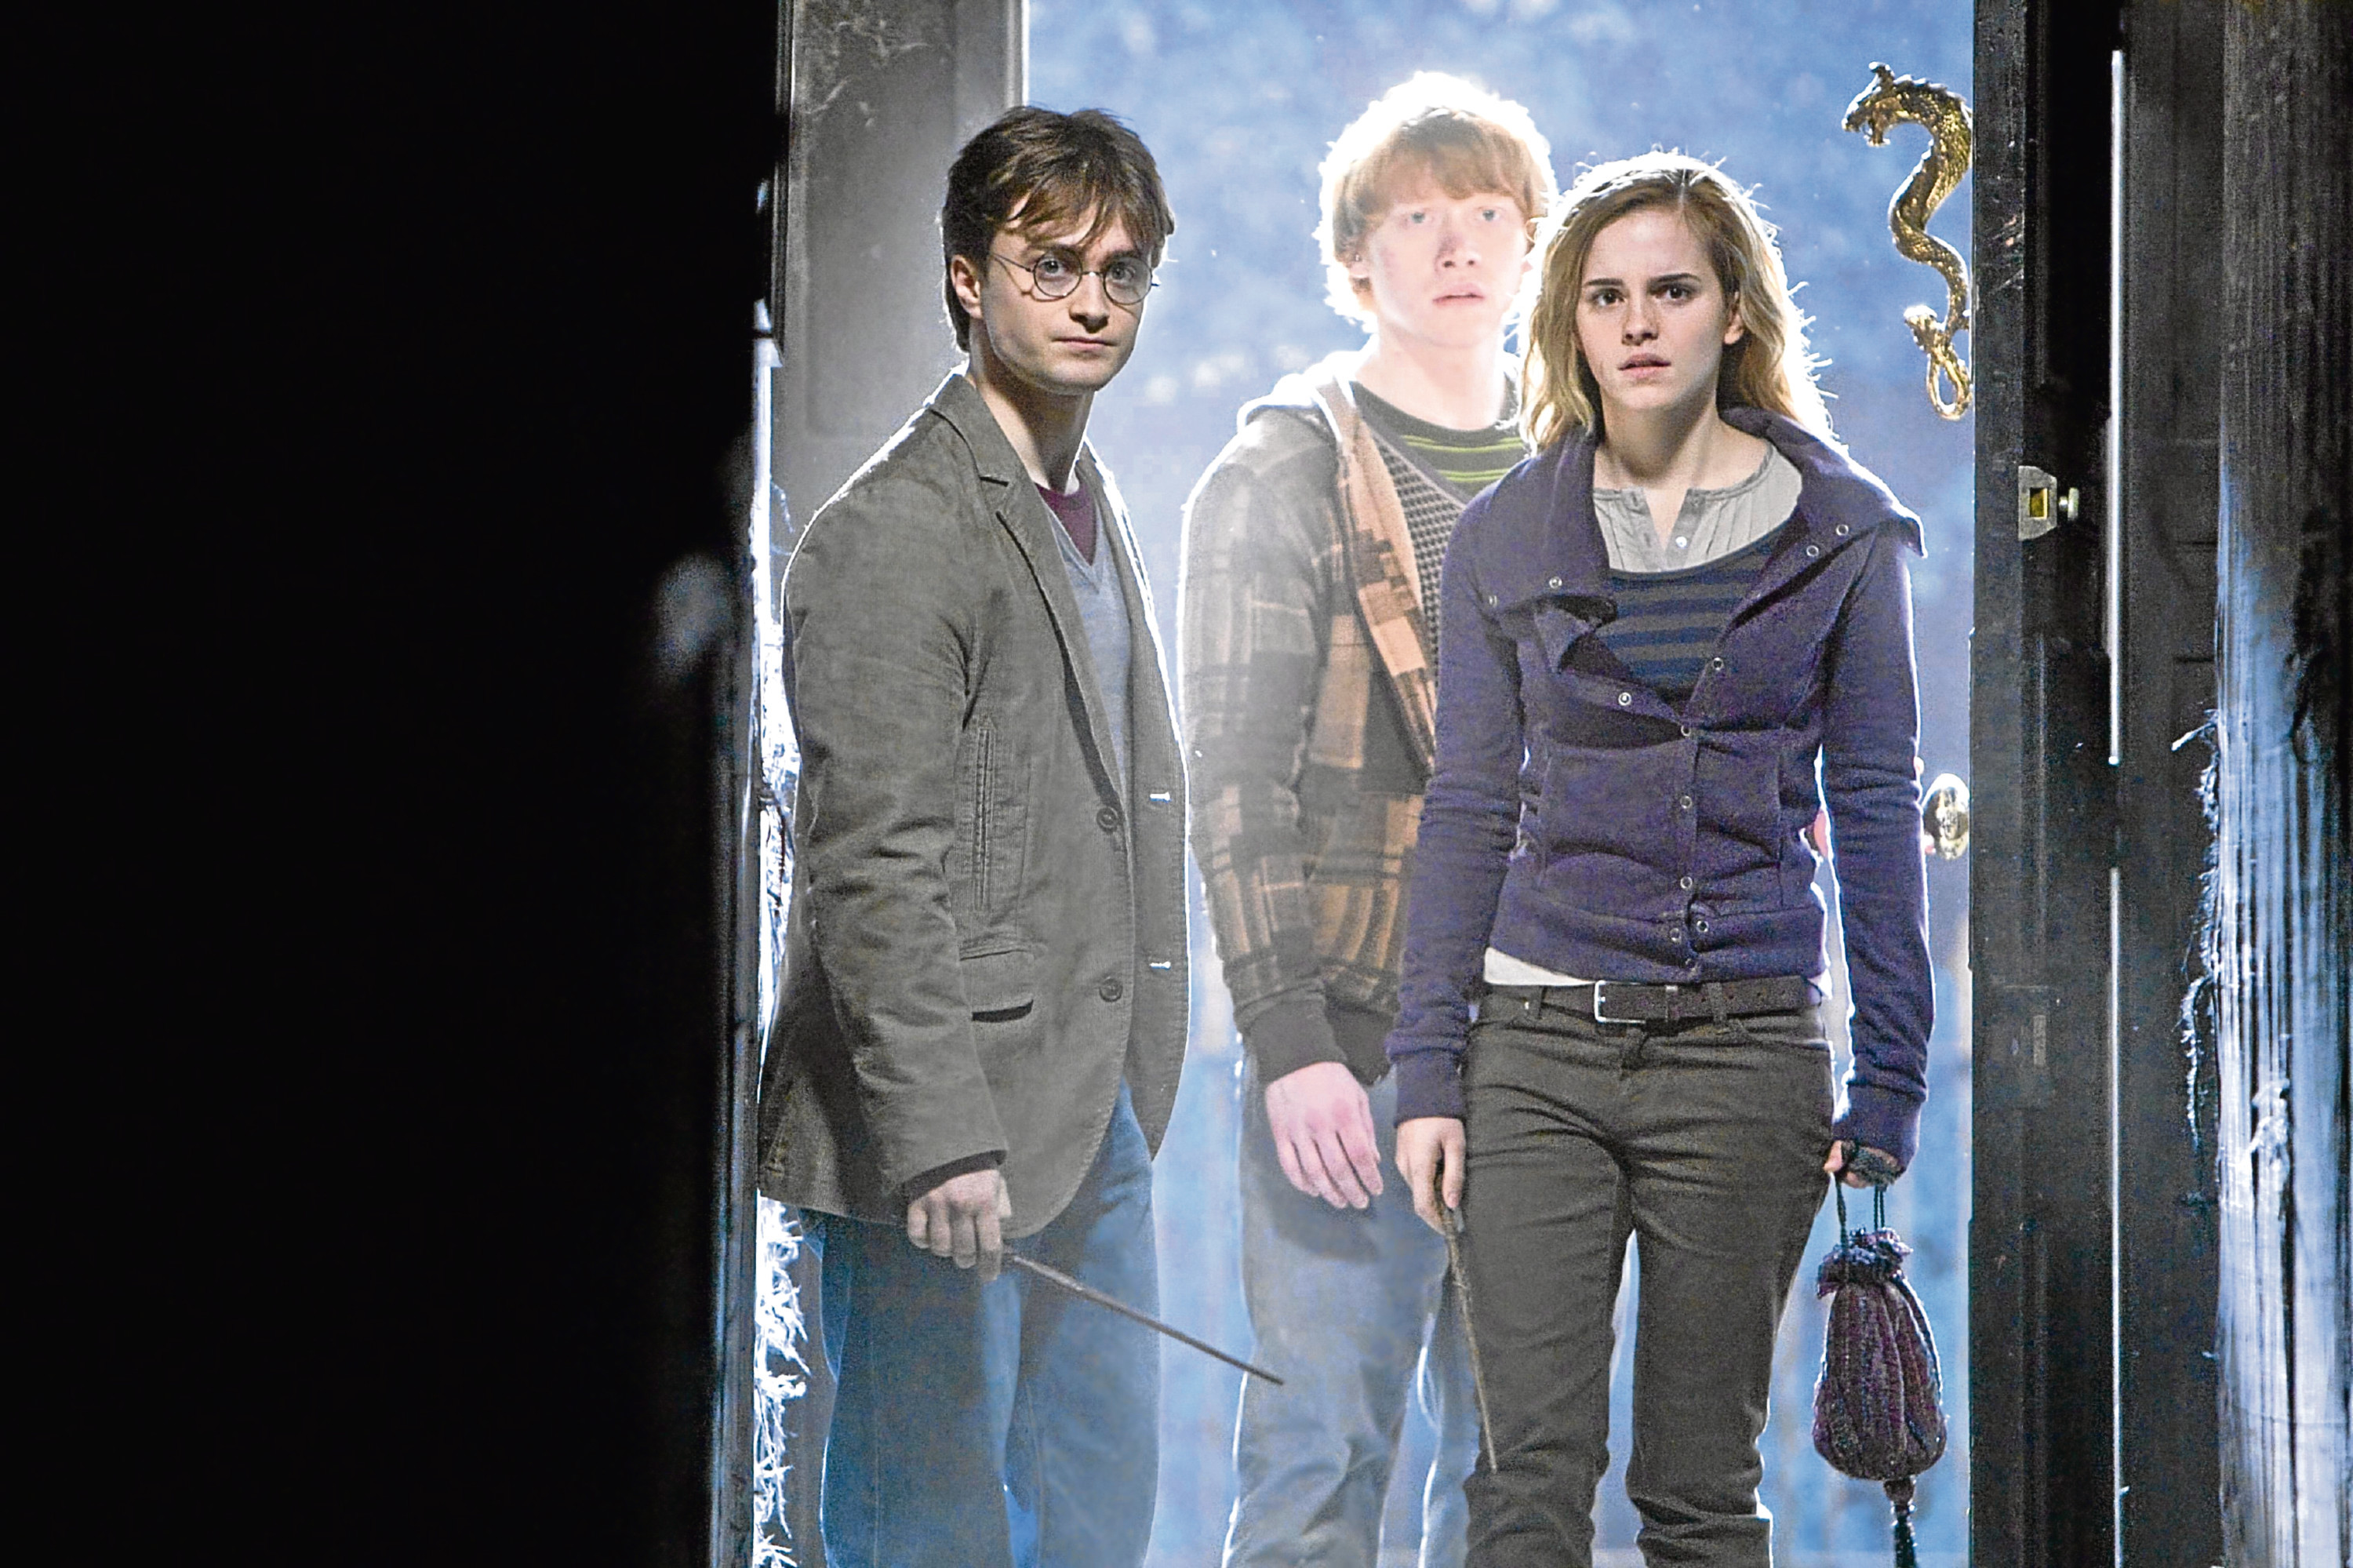 Daniel Radcliffe as Harry Potter, Rupert Grint as Ron Weasley and Emma Watson as Hermione Granger (PA Photo/Warner Bros)